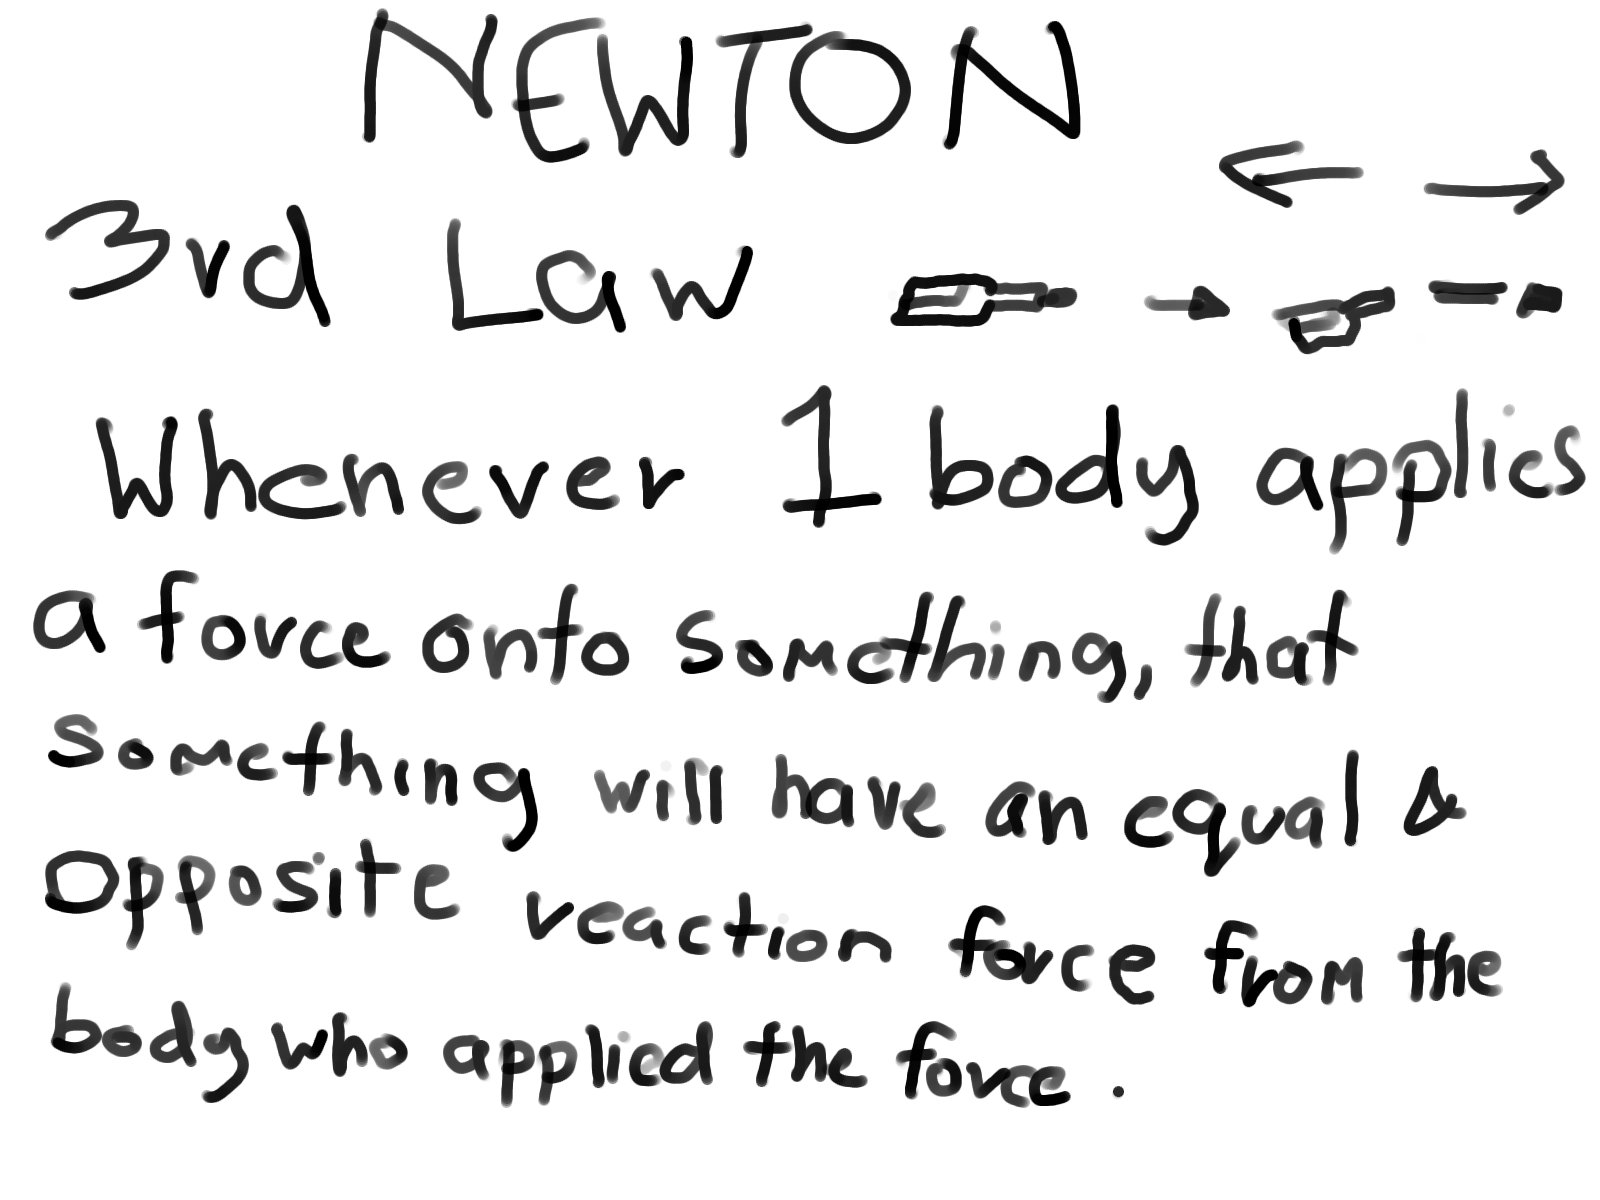 Newton 3rd law of motion